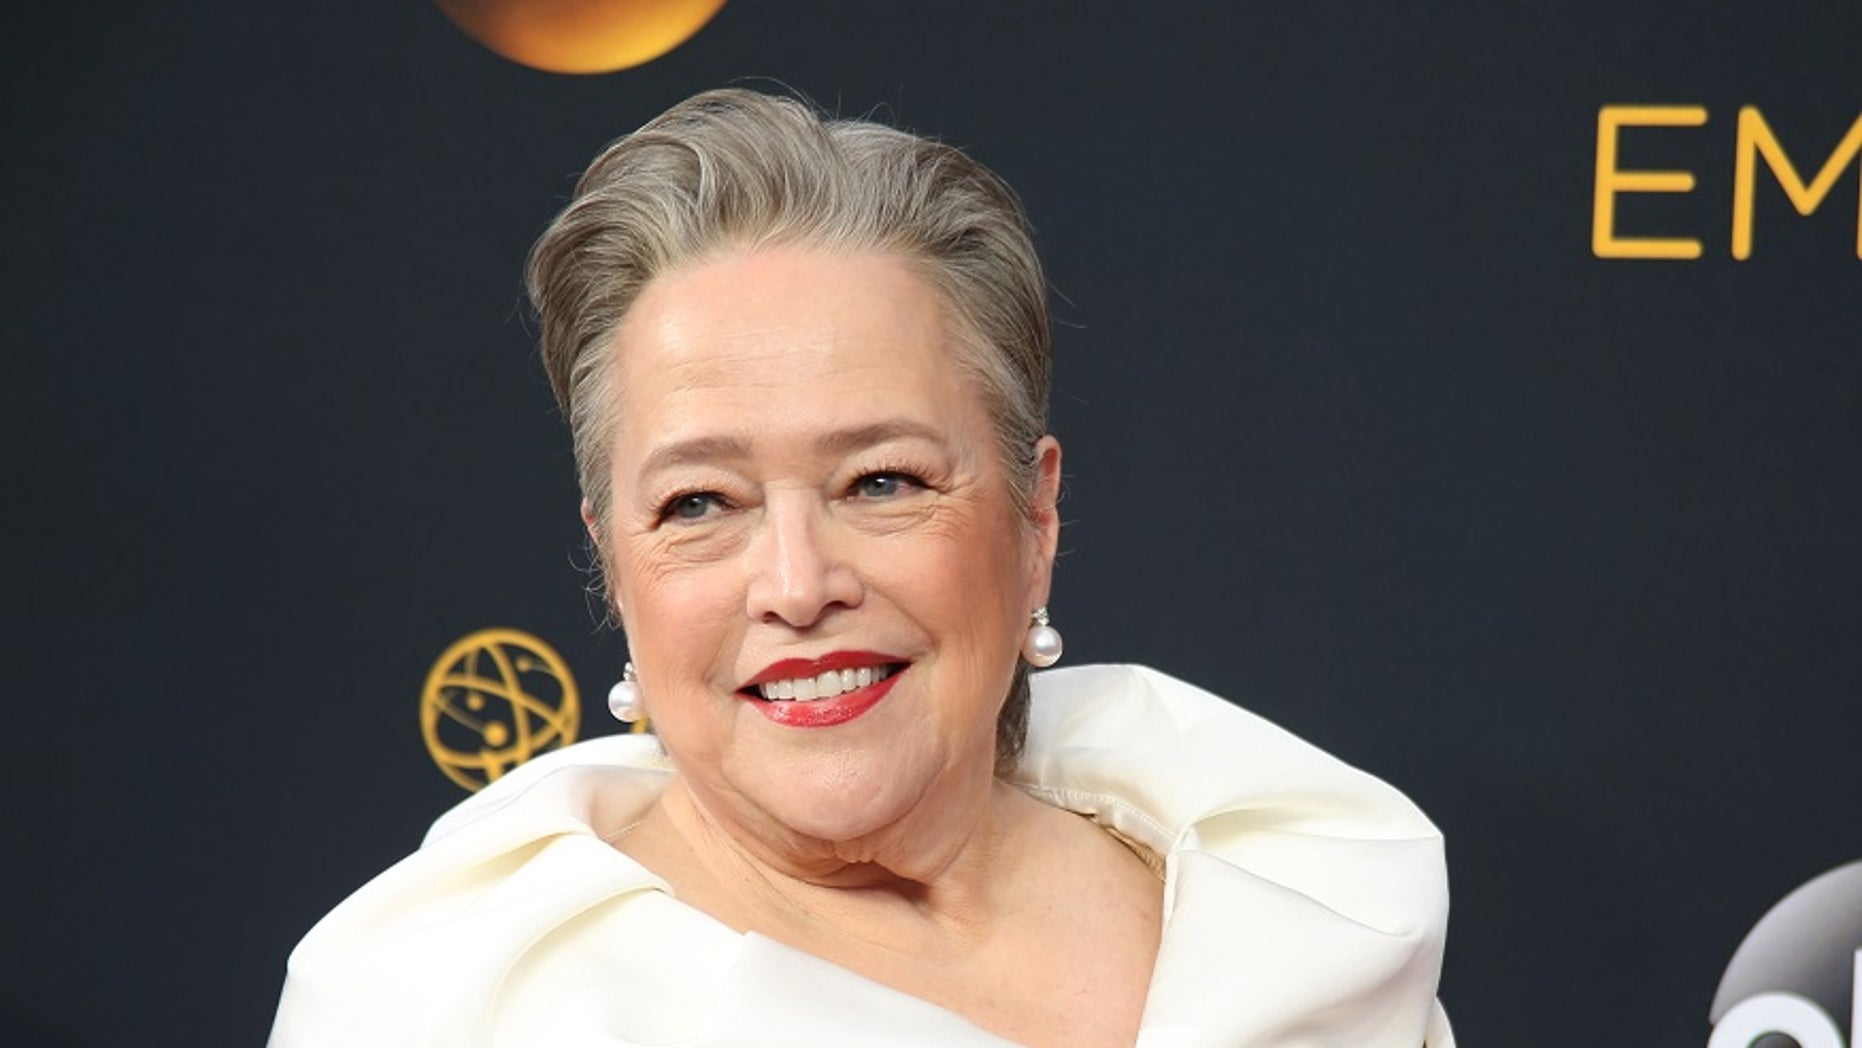 Kathy Bates debuted her shocking new look